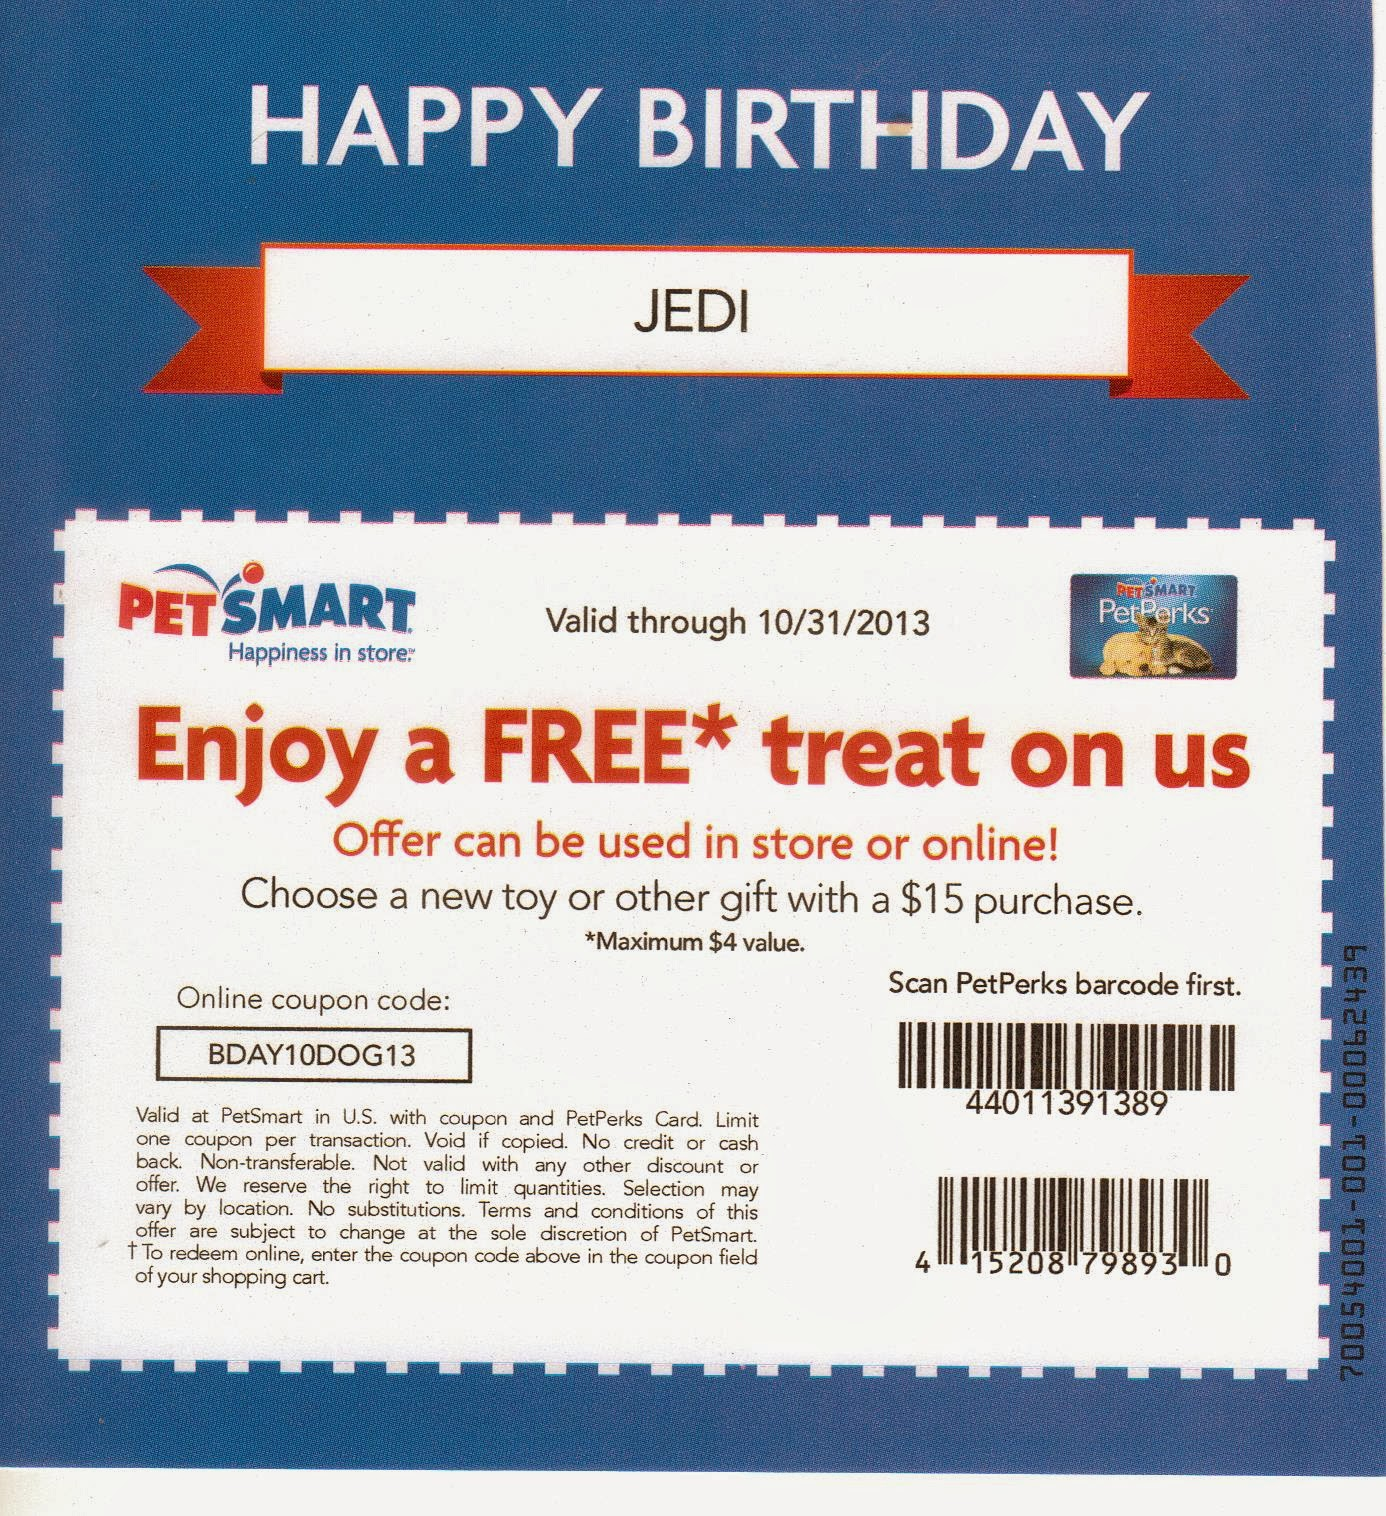 Expired Puppy Cake Coupons